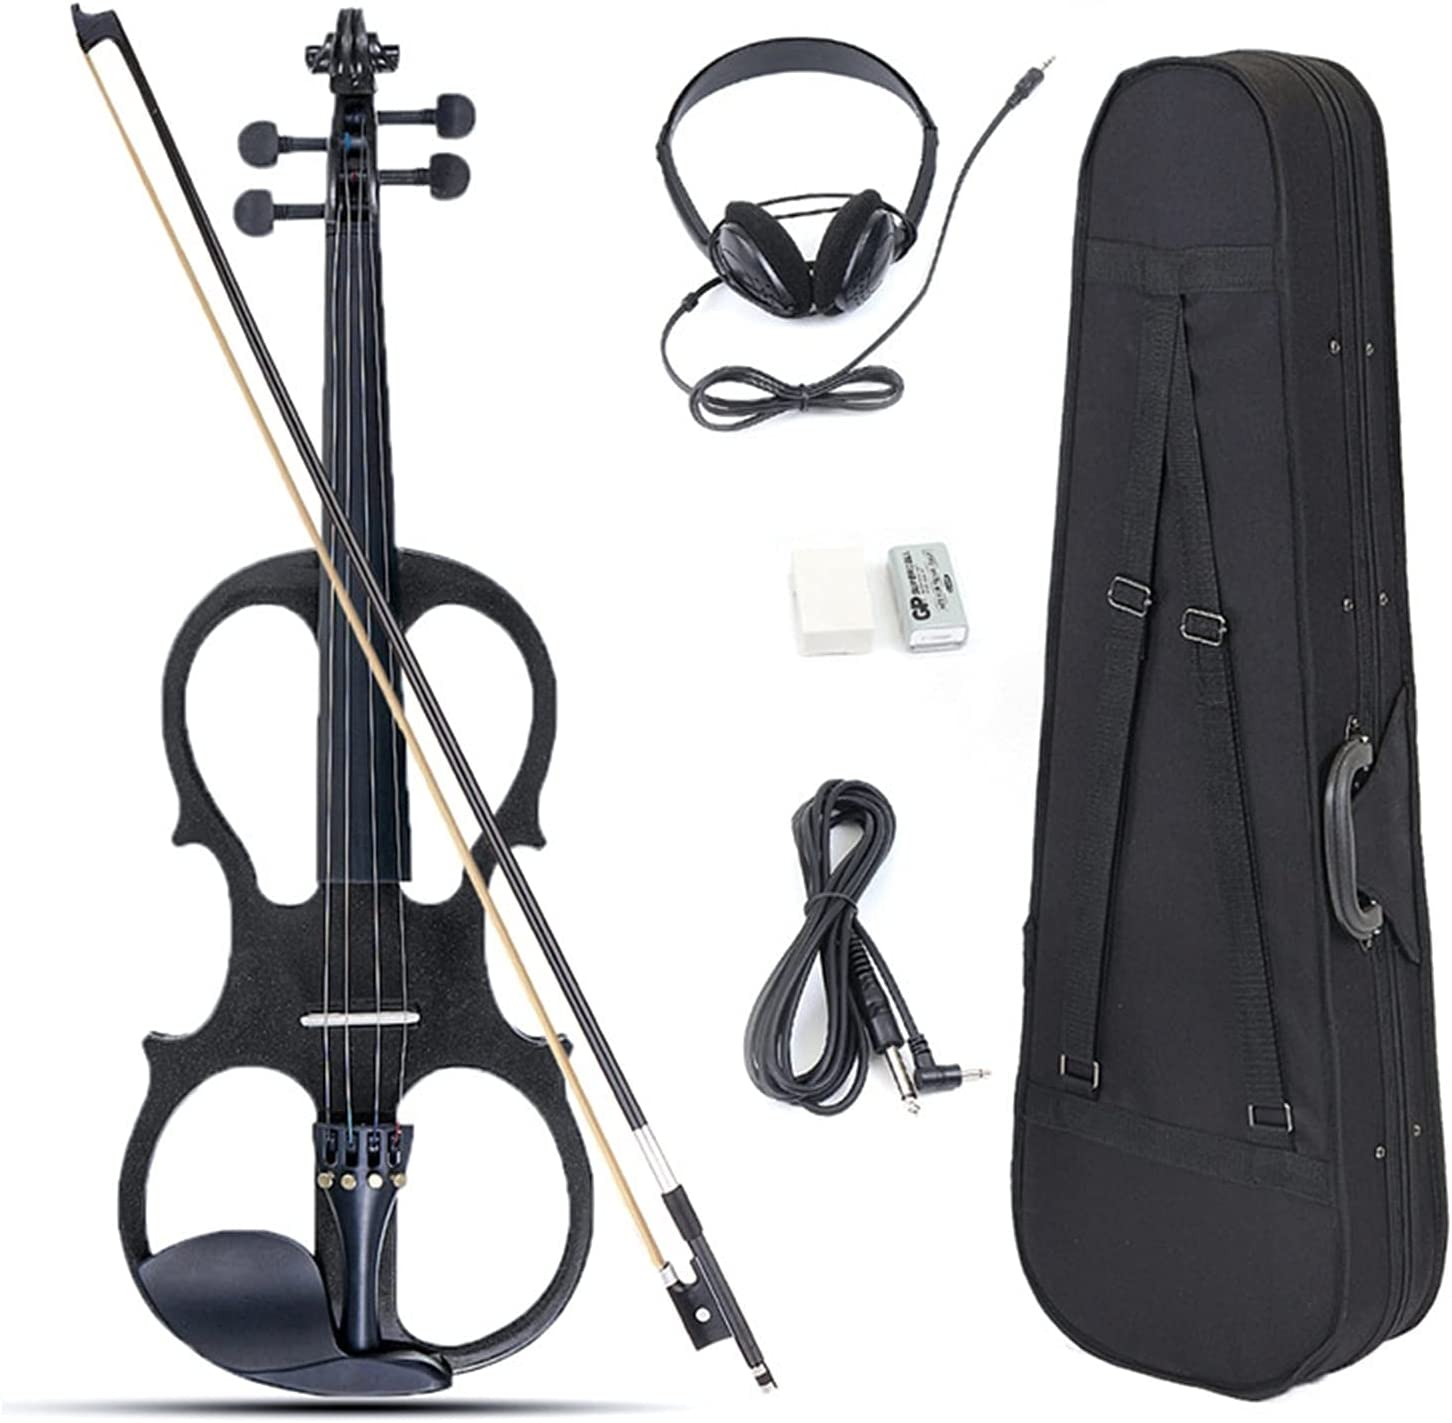 Violin Model 4 Electric Sale Special Price Acoustic Full 5 ☆ very popular Pack Basswood Fid